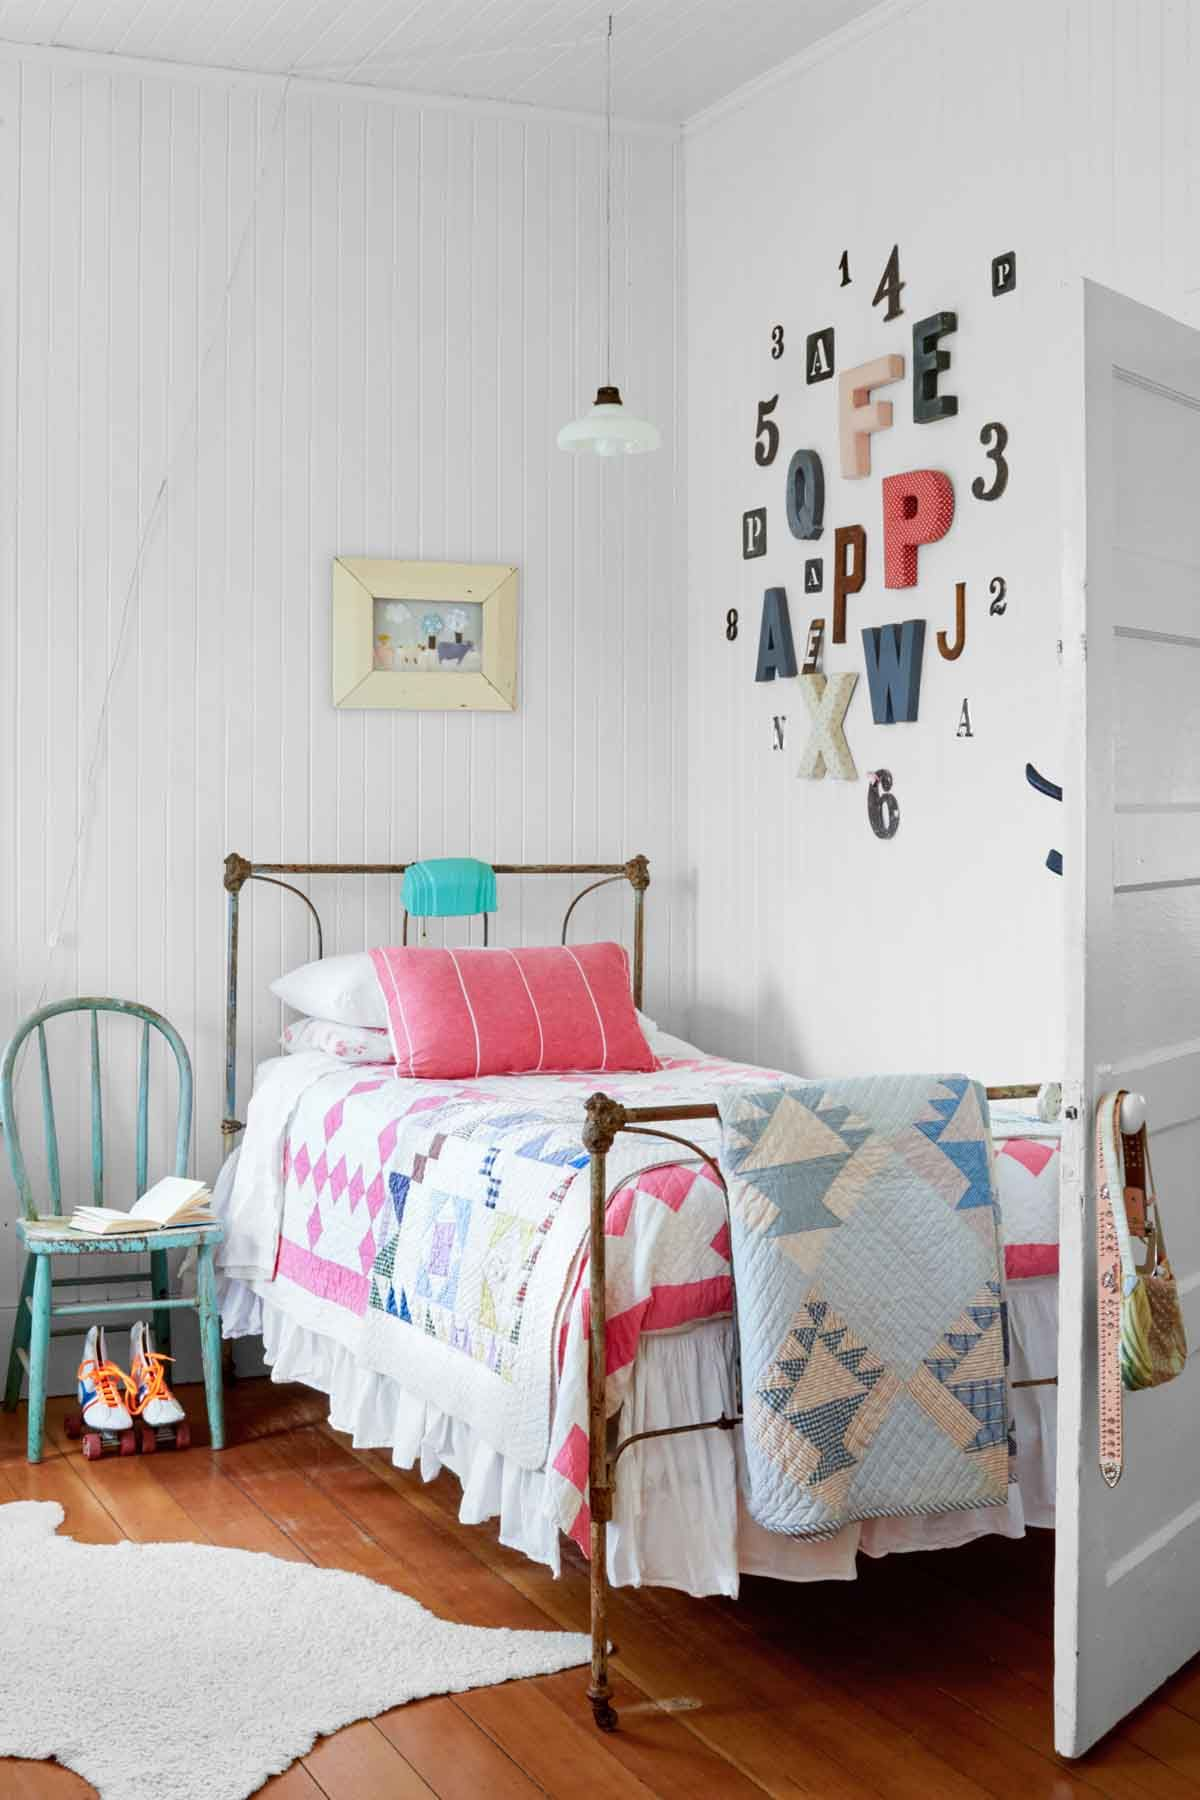 12 Fun Girl S Bedroom Decor Ideas Cute Room Decorating For Girls